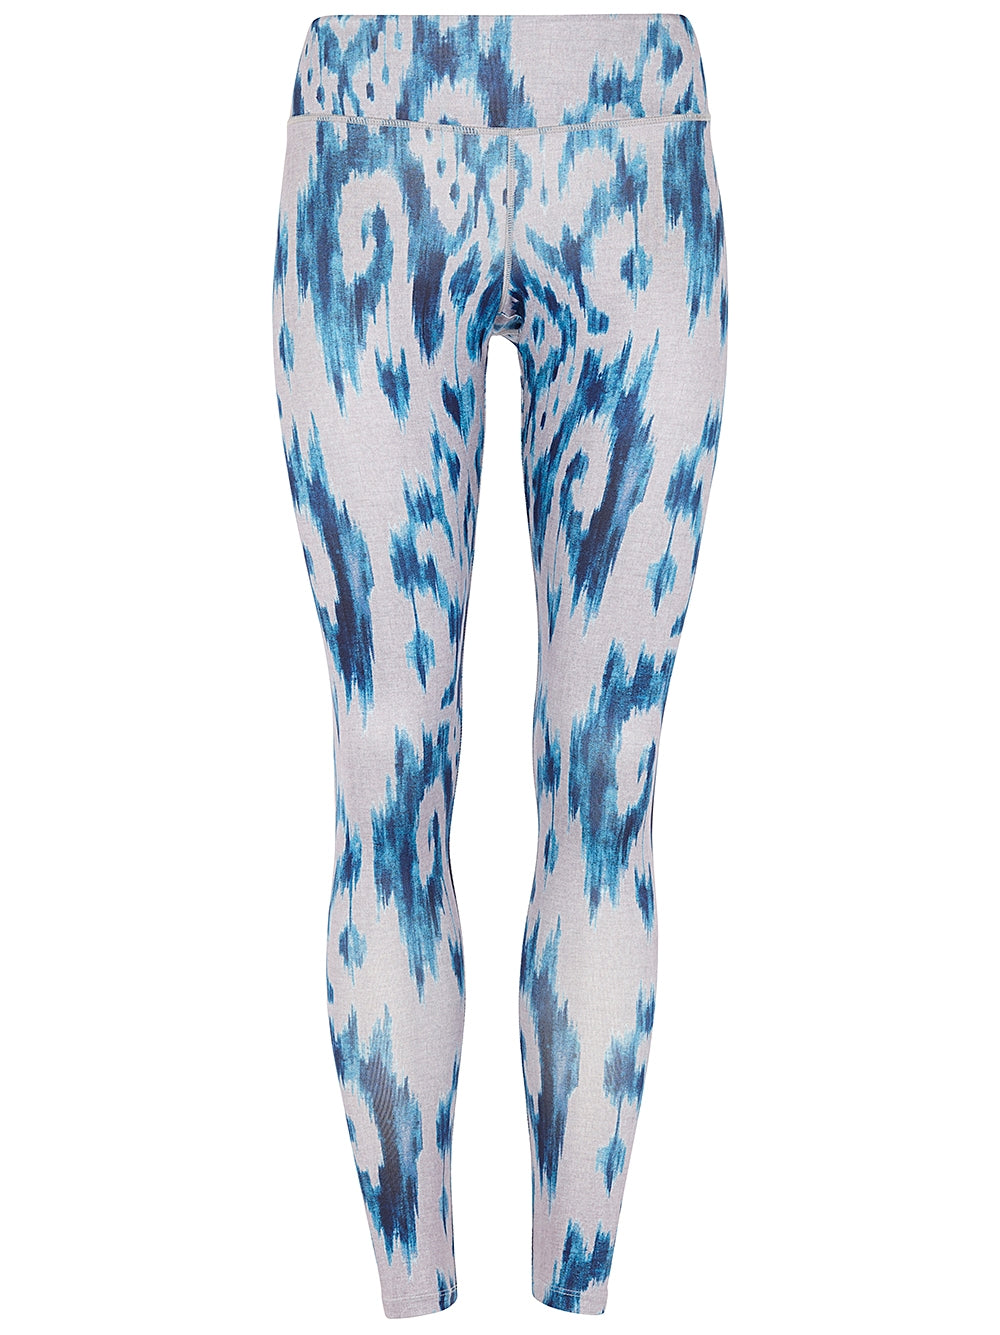 Fancy Legging (ikat print)